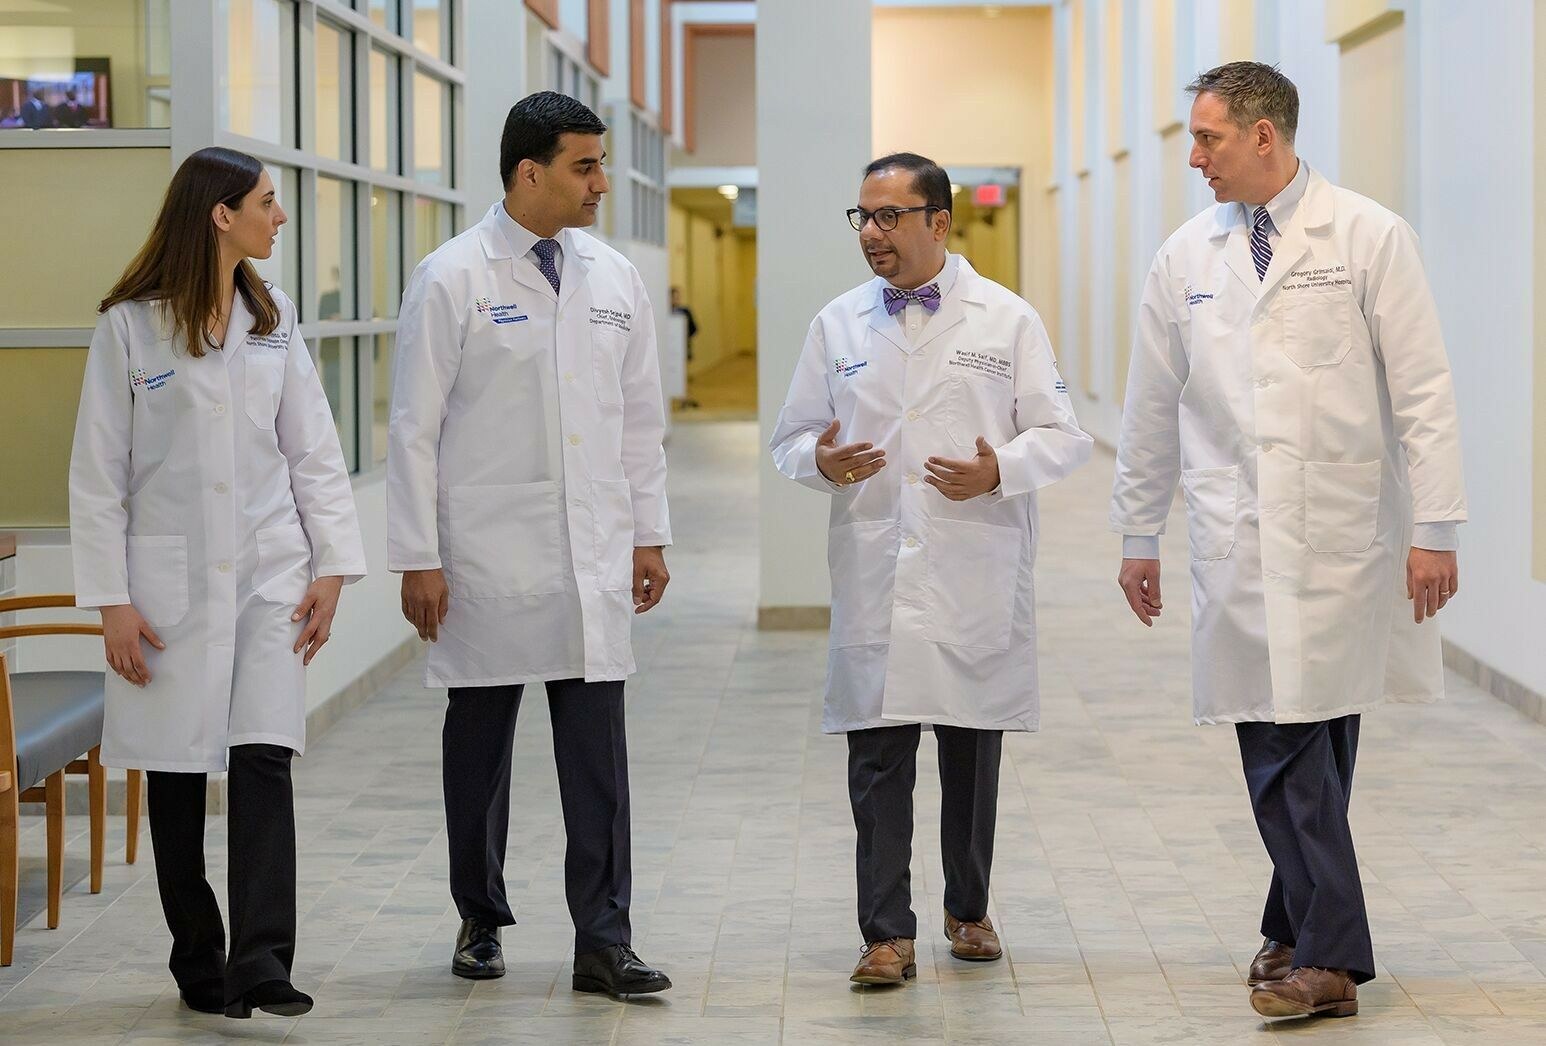 A group of physicians talking in an open, airy hallway.